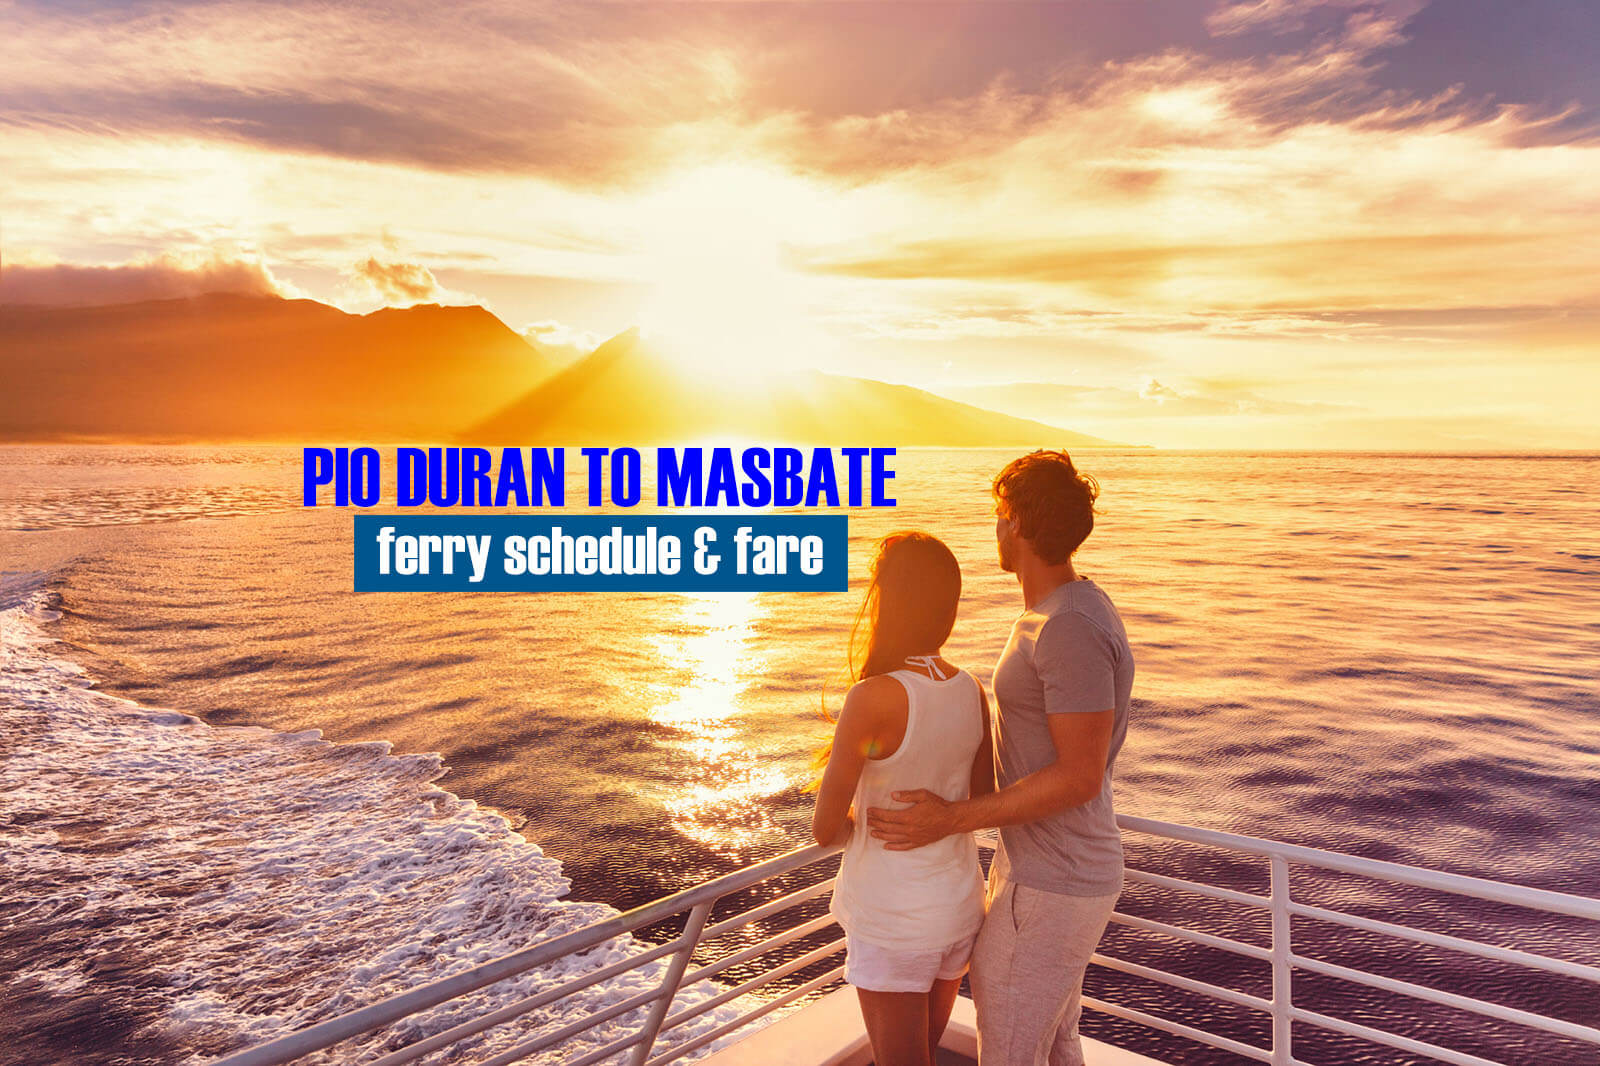 Pio Duran to Masbate: 2020 Ferry Schedule and Fare Rates